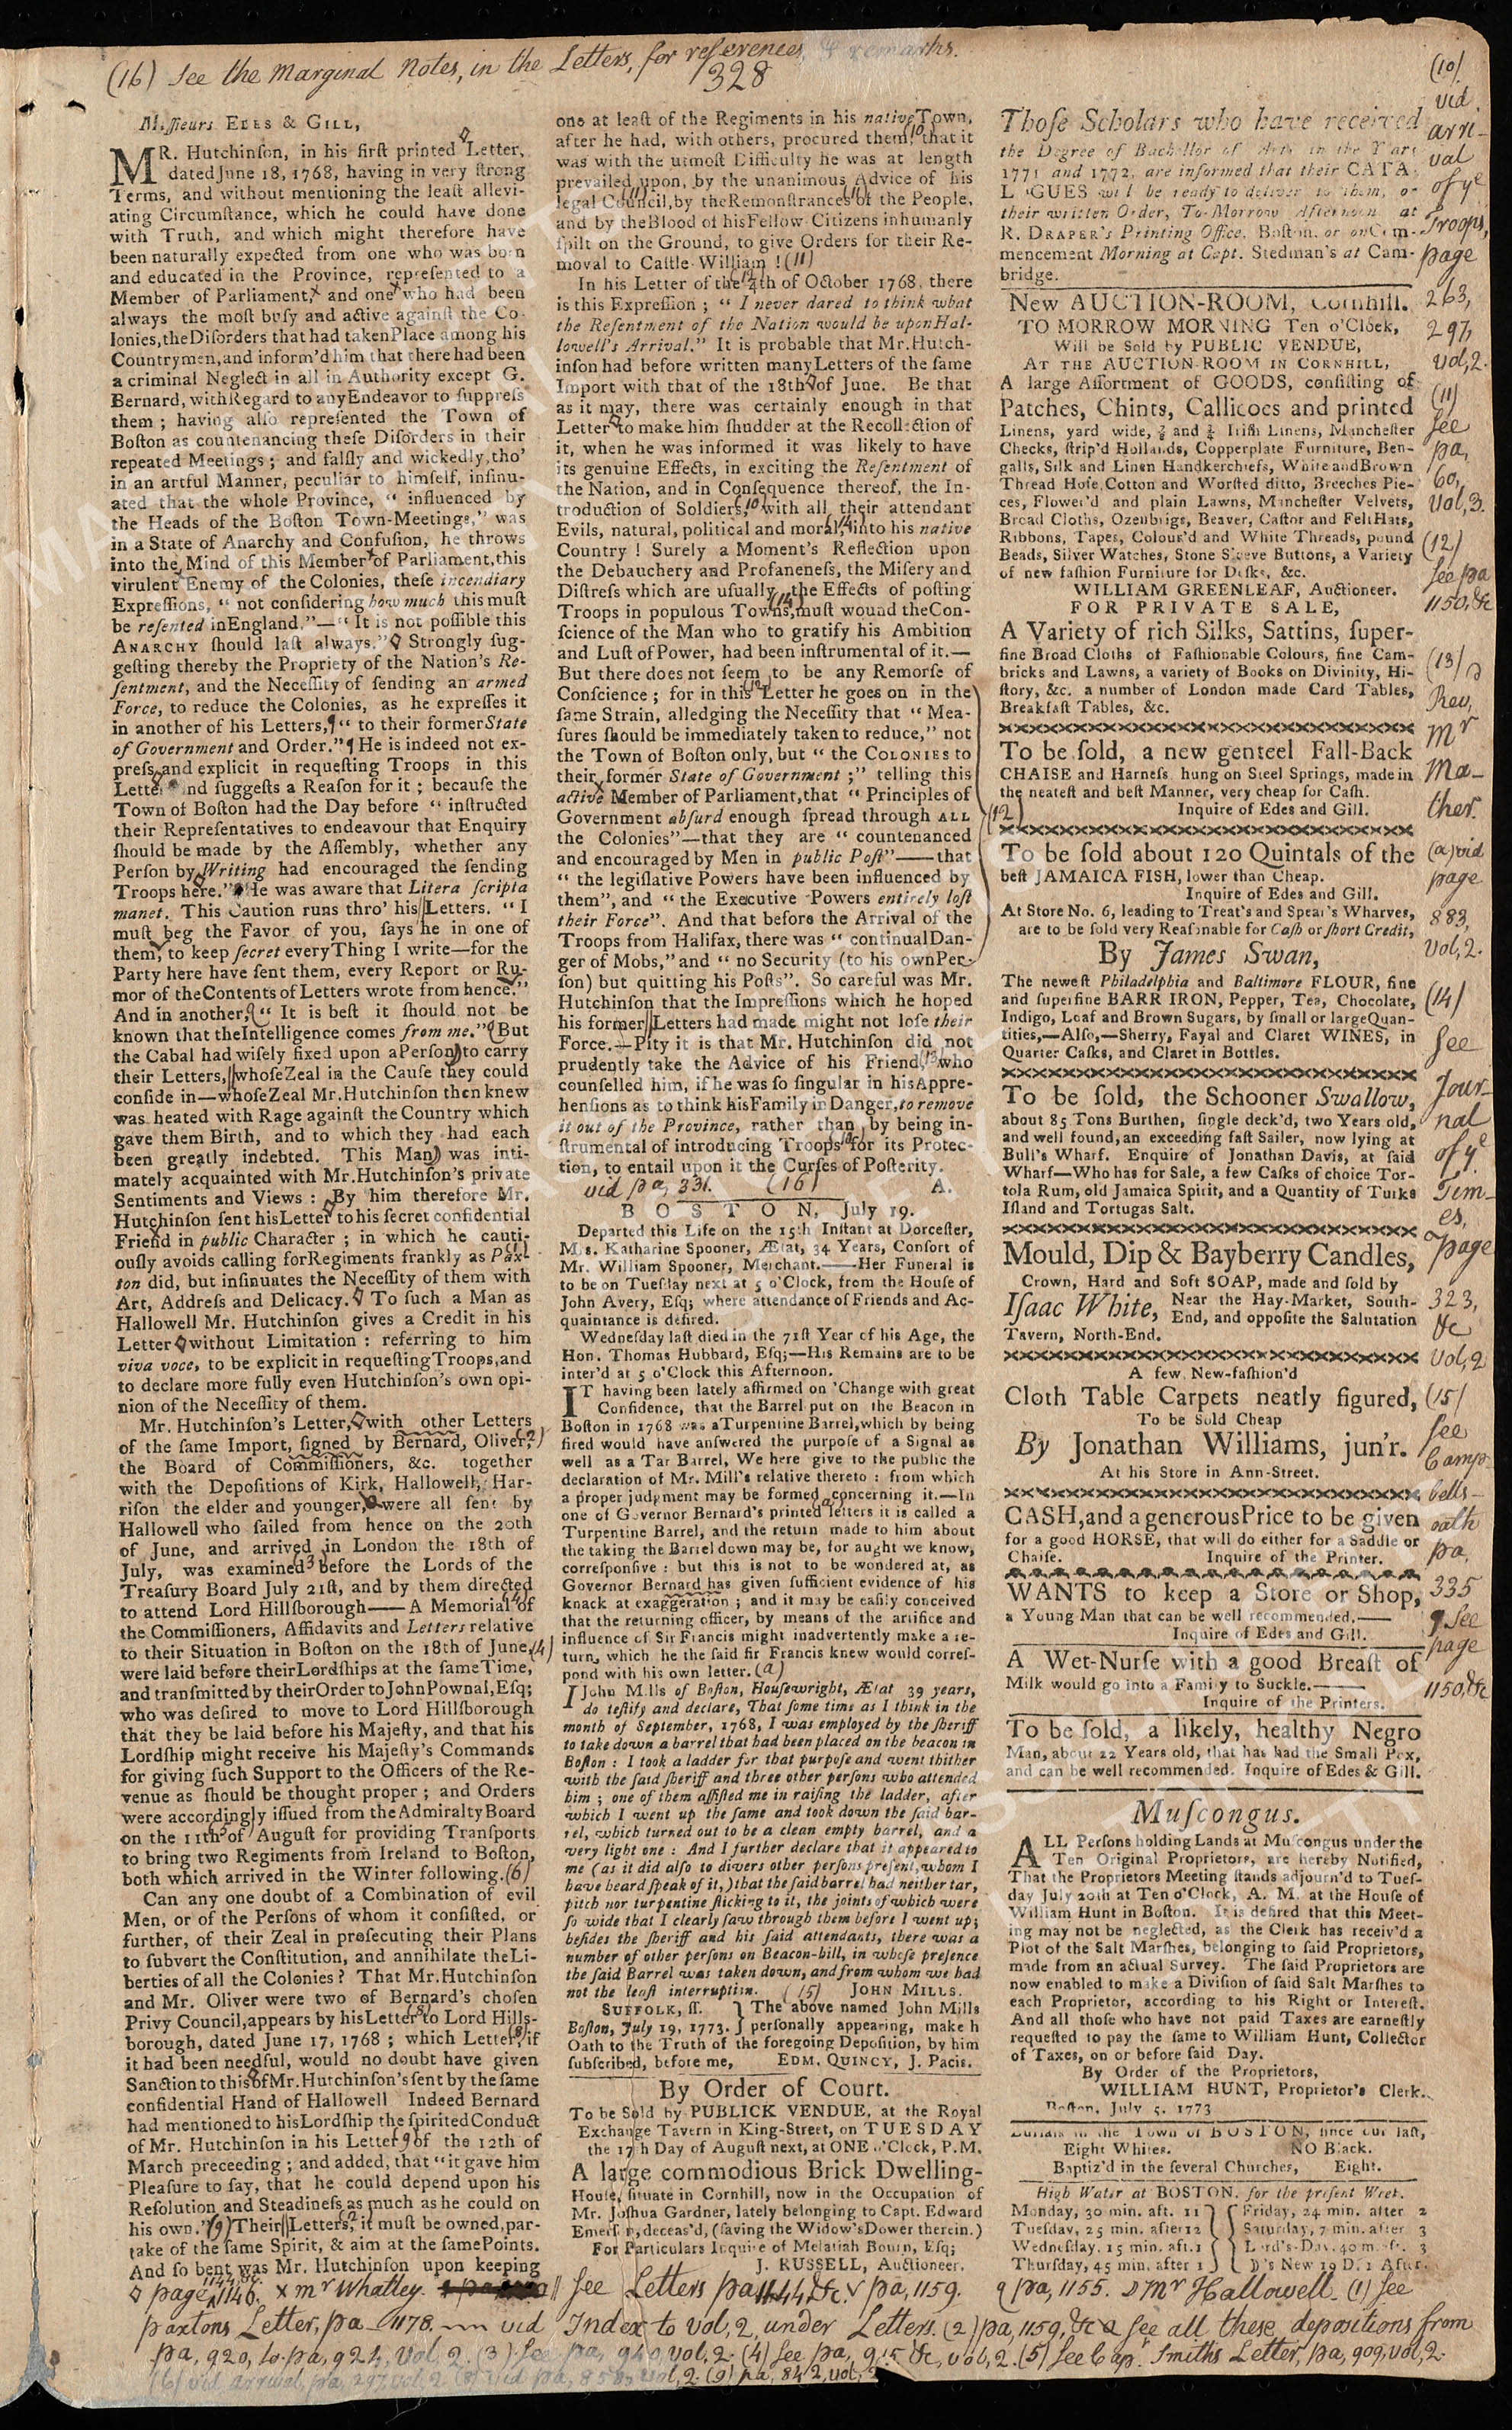 The Annotated Newspapers of Harbottle Dorr, Jr. Volume 4: Newspapers, 6 January 1772 to 26 December 1776: Page 328